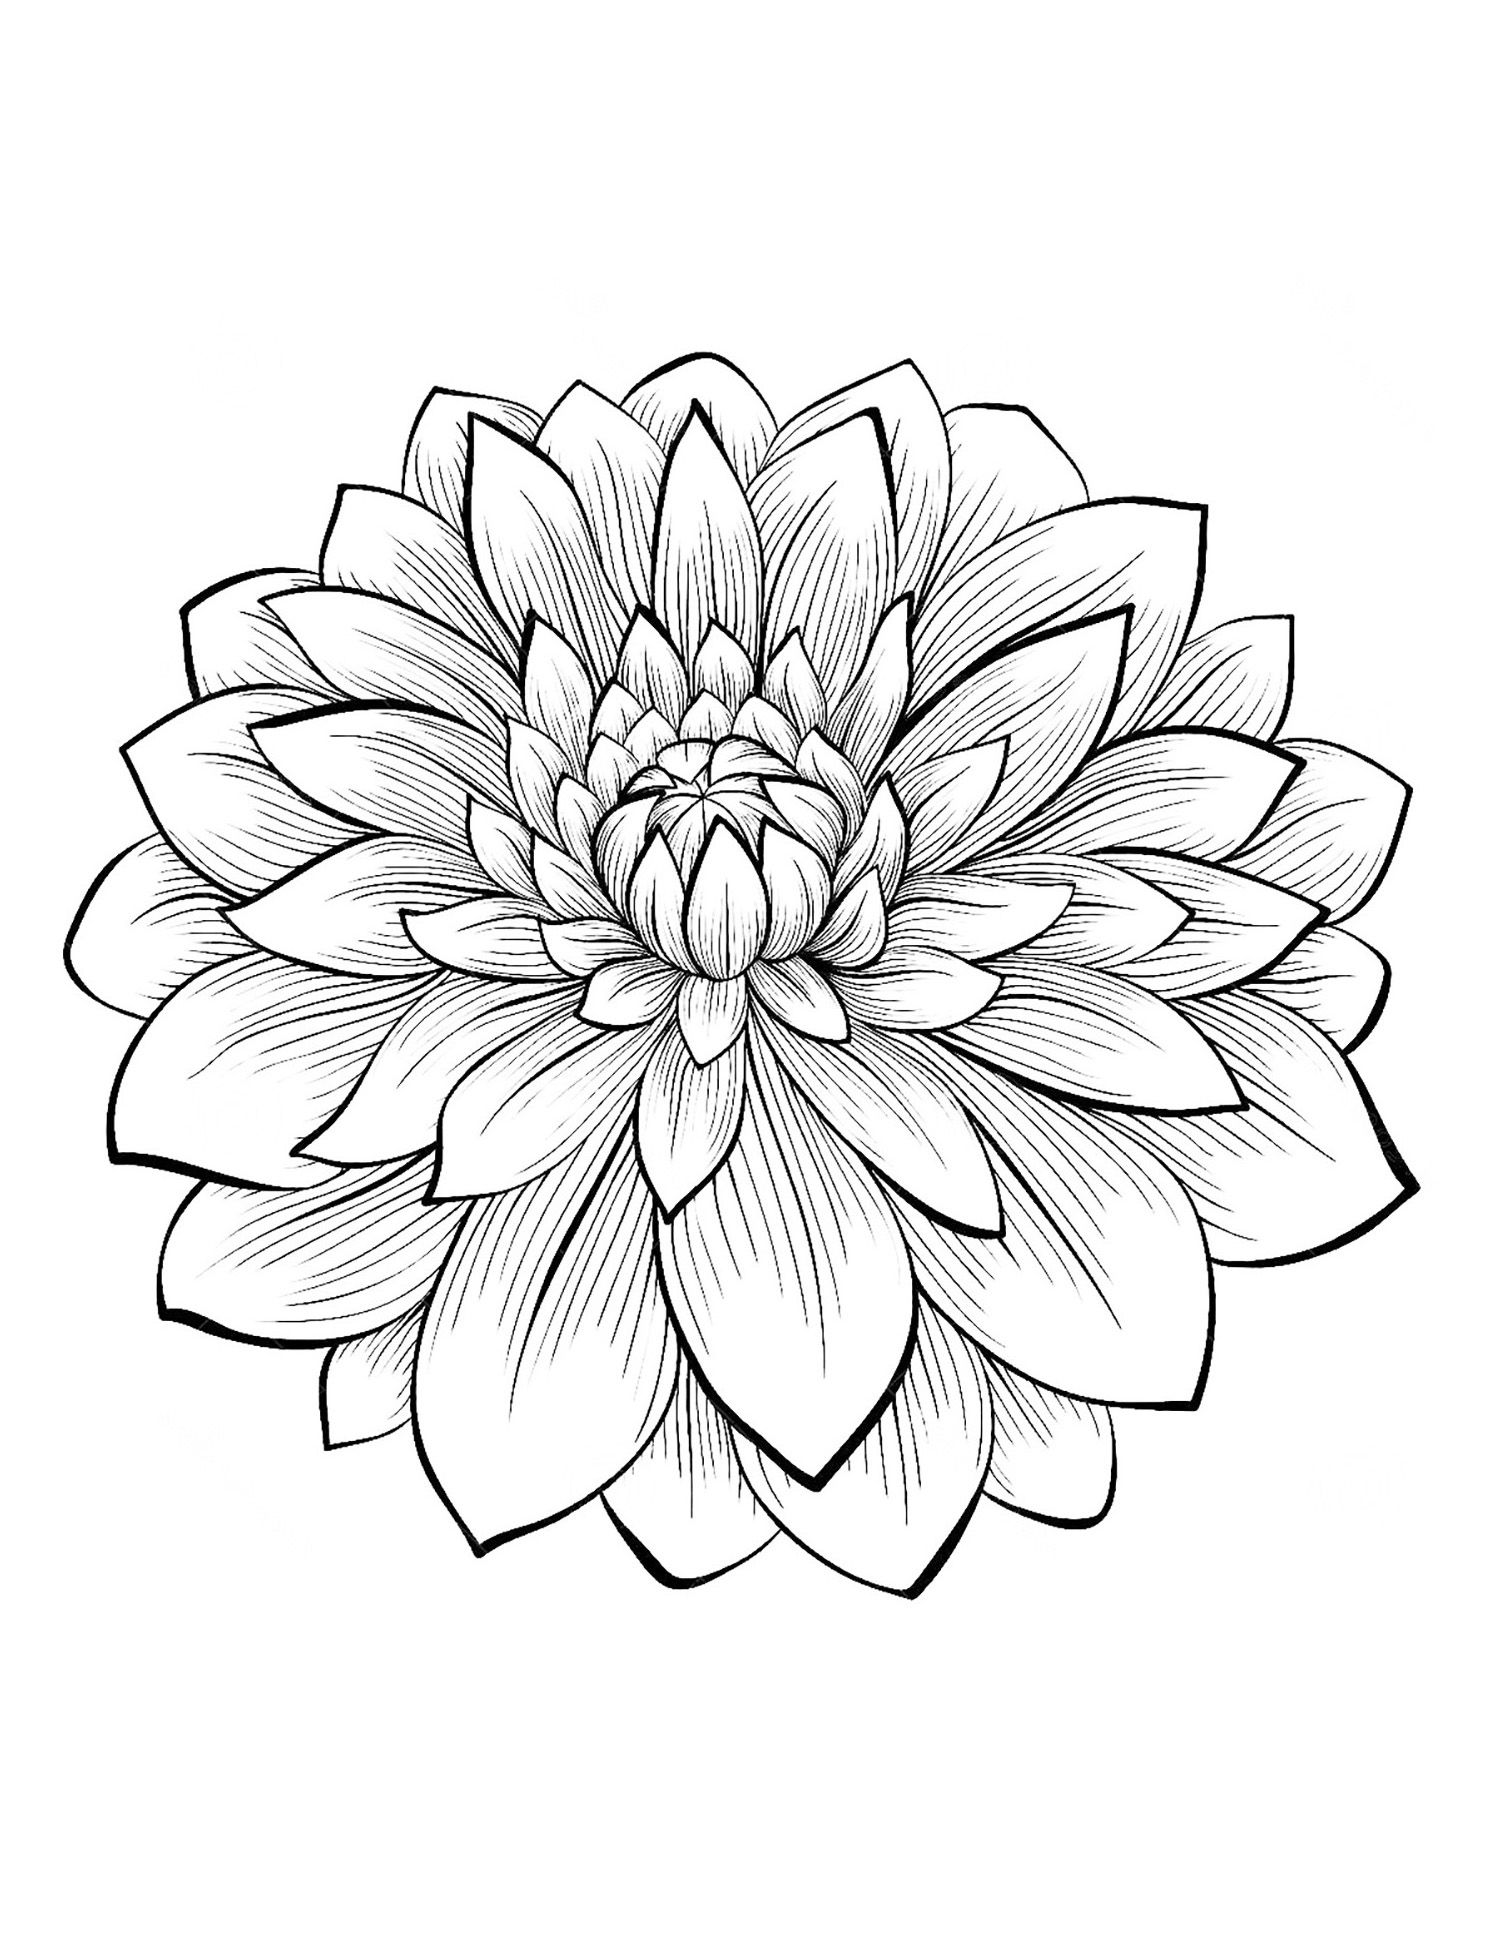 It's just a photo of Priceless Printable Coloring Pages for Adults Flowers